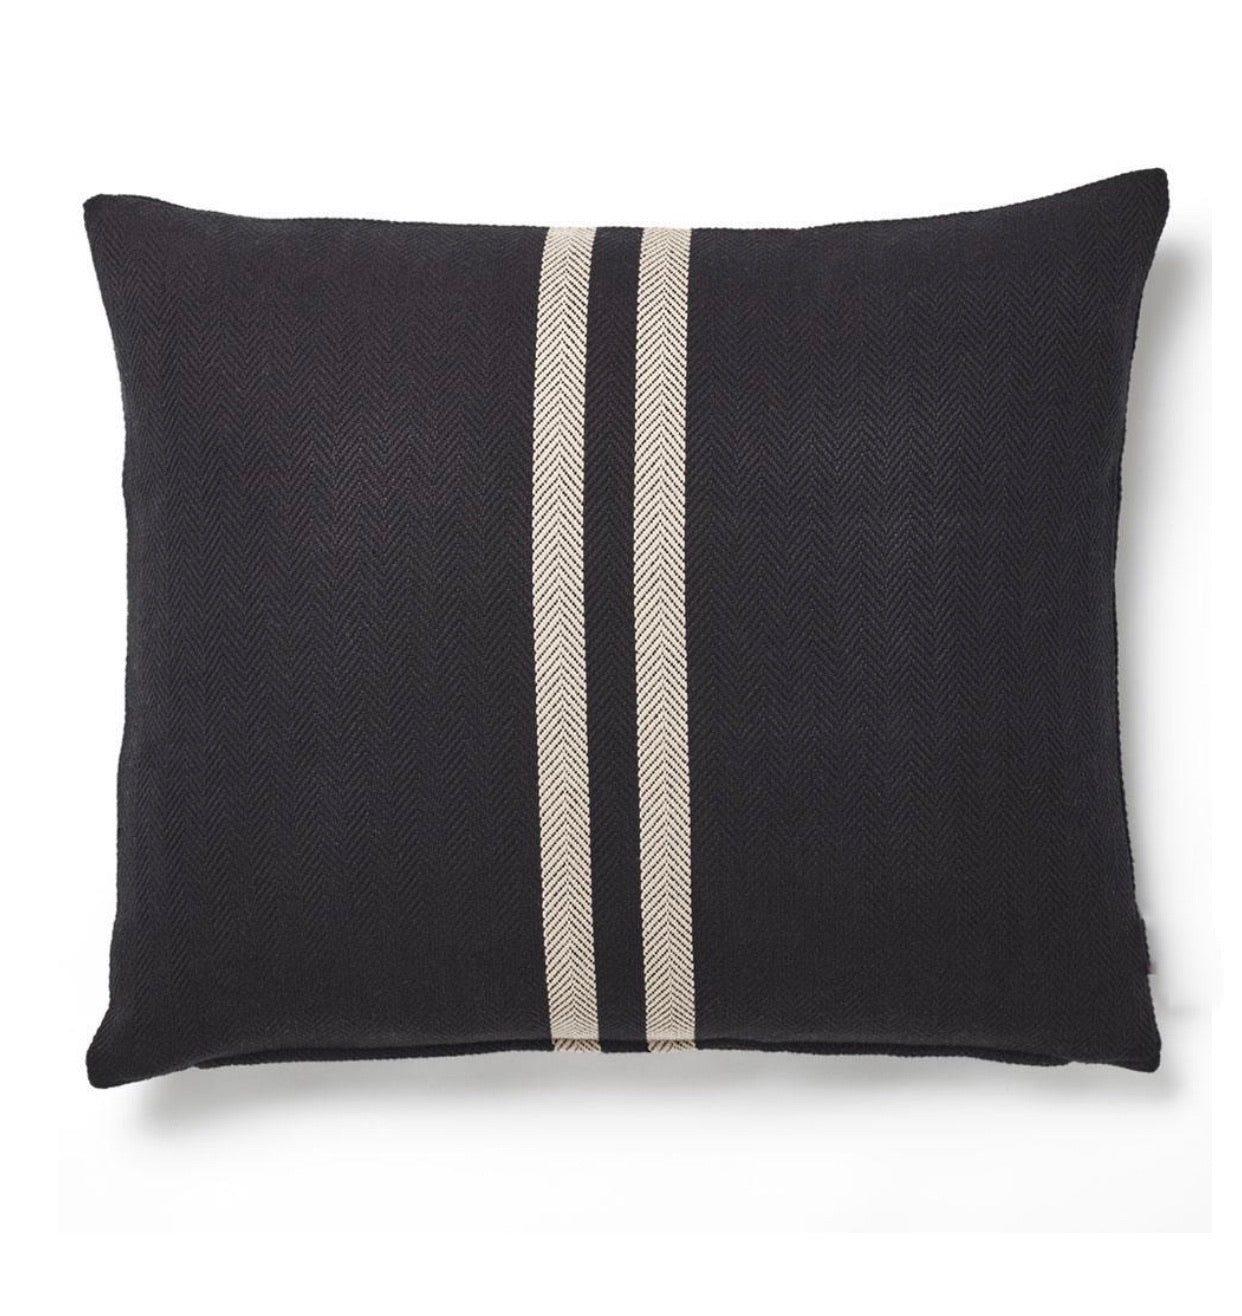 Herringbone Stripe Cushion - Black/Natural